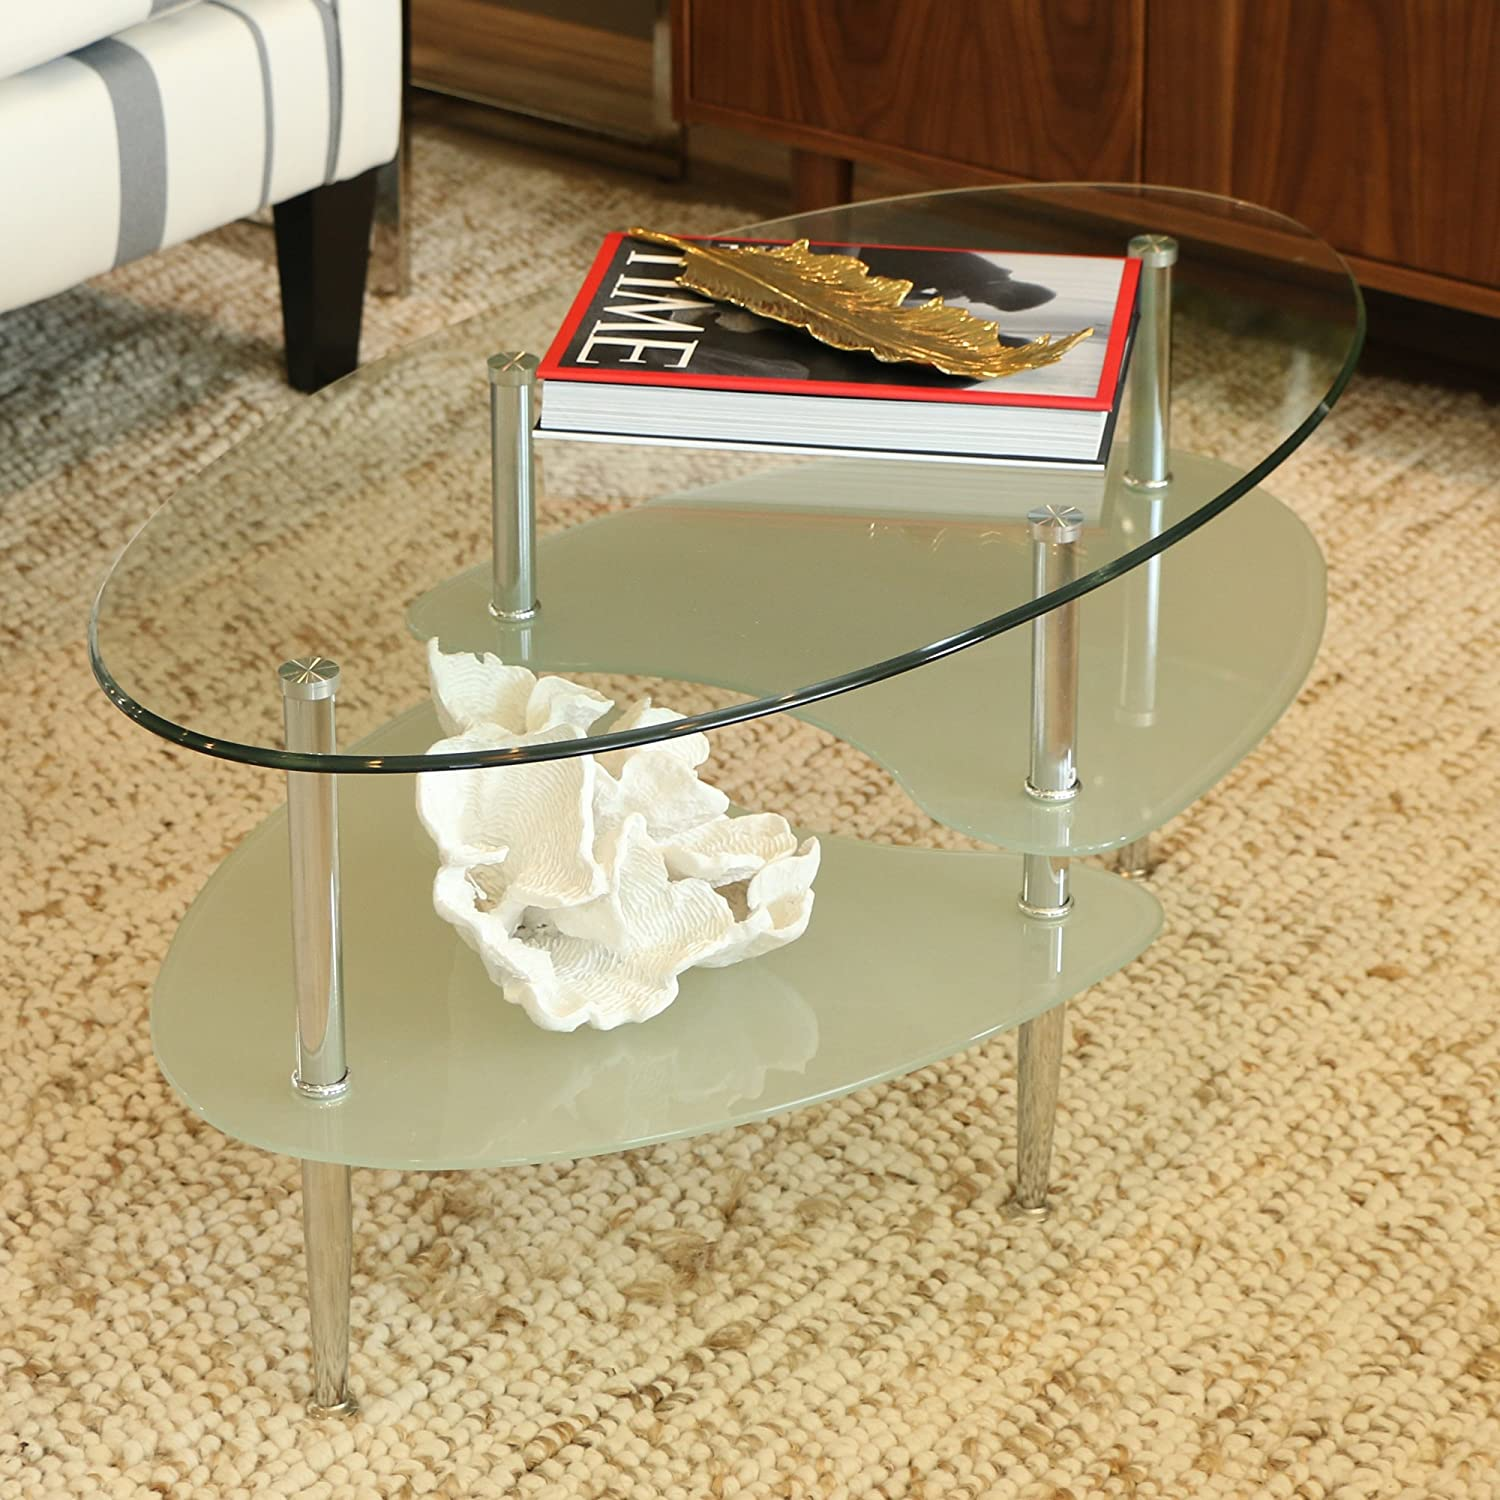 Amazon.com: Walker Edison Glass Oval Coffee Table: Kitchen & Dining